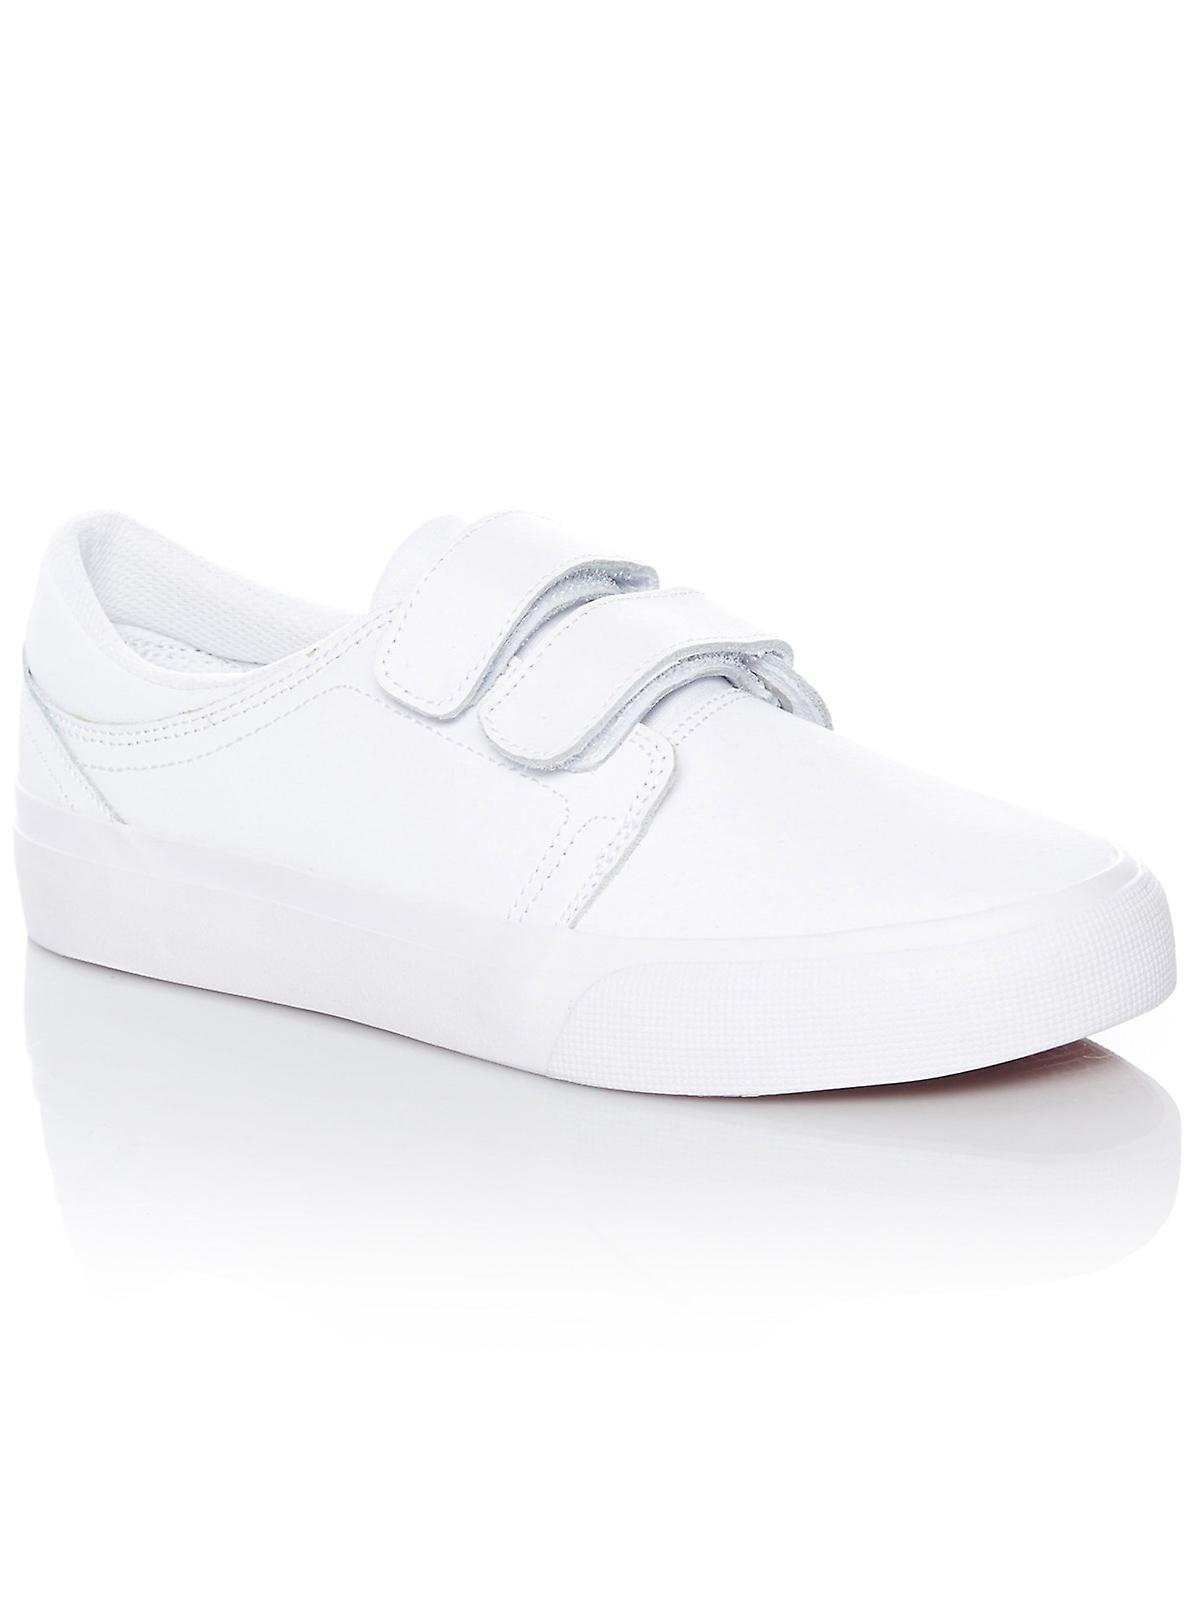 DC White-White-Athletic Red Trase Top V SE Womens Low Top Trase Shoe b702c6